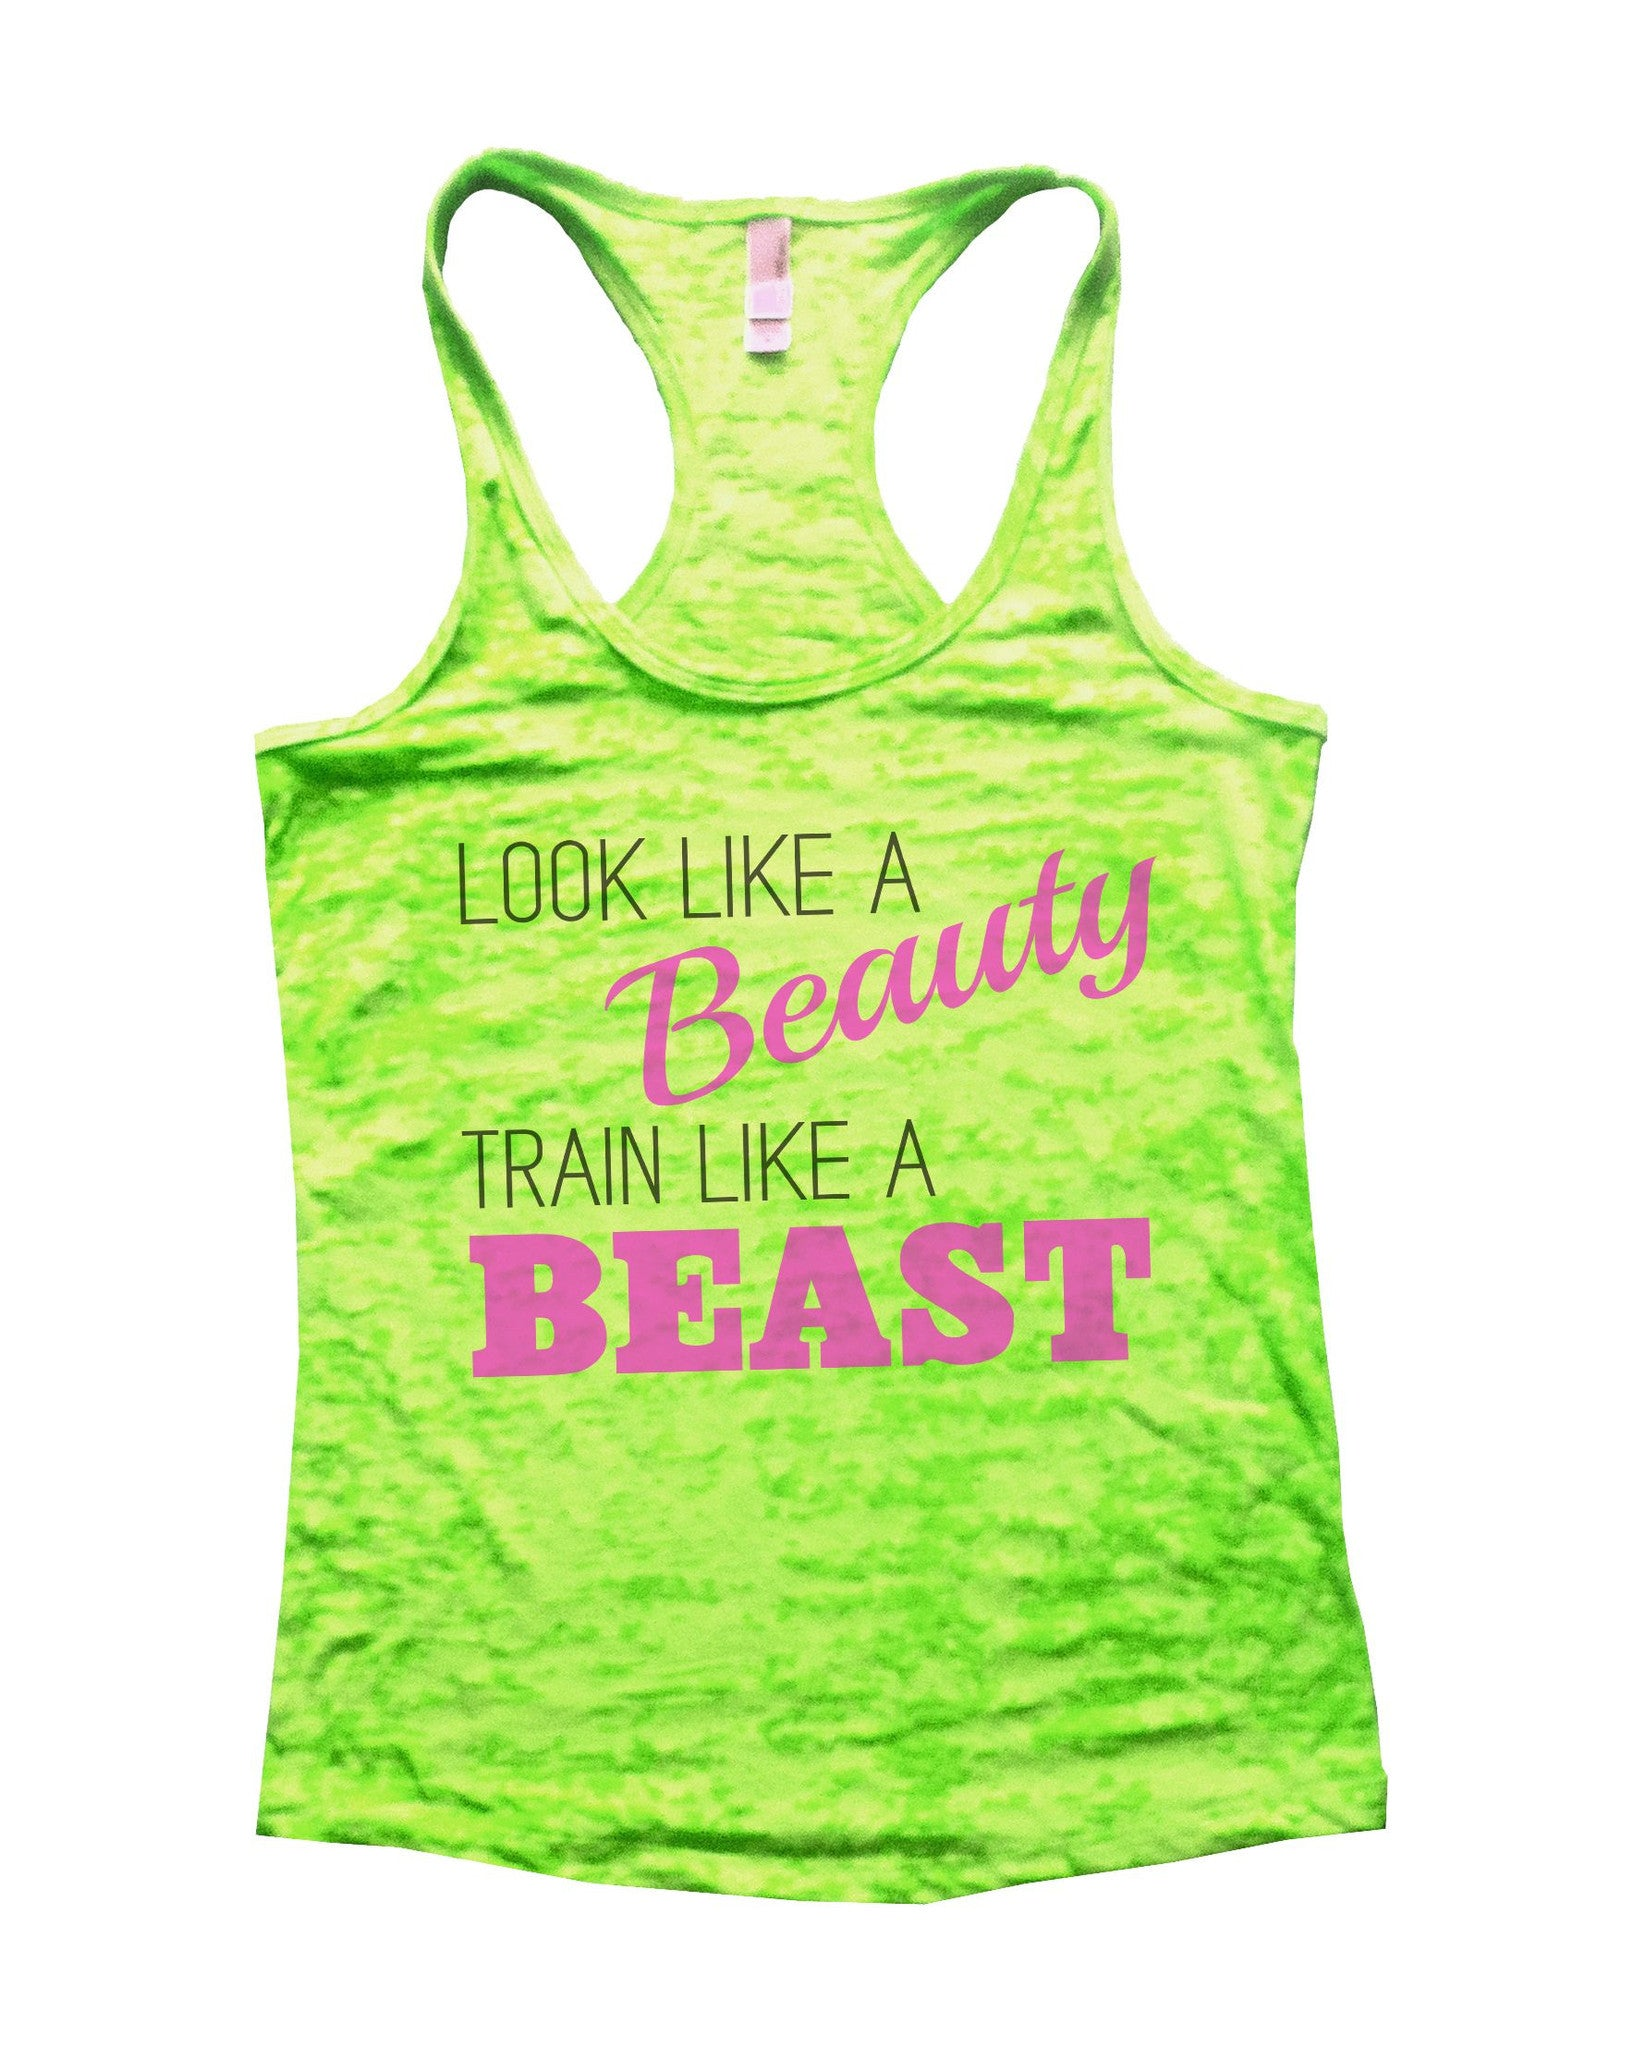 Look Like A Beauty Train Like A Beast Burnout Tank Top By BurnoutTankTops.com - 751 - Funny Shirts Tank Tops Burnouts and Triblends  - 1